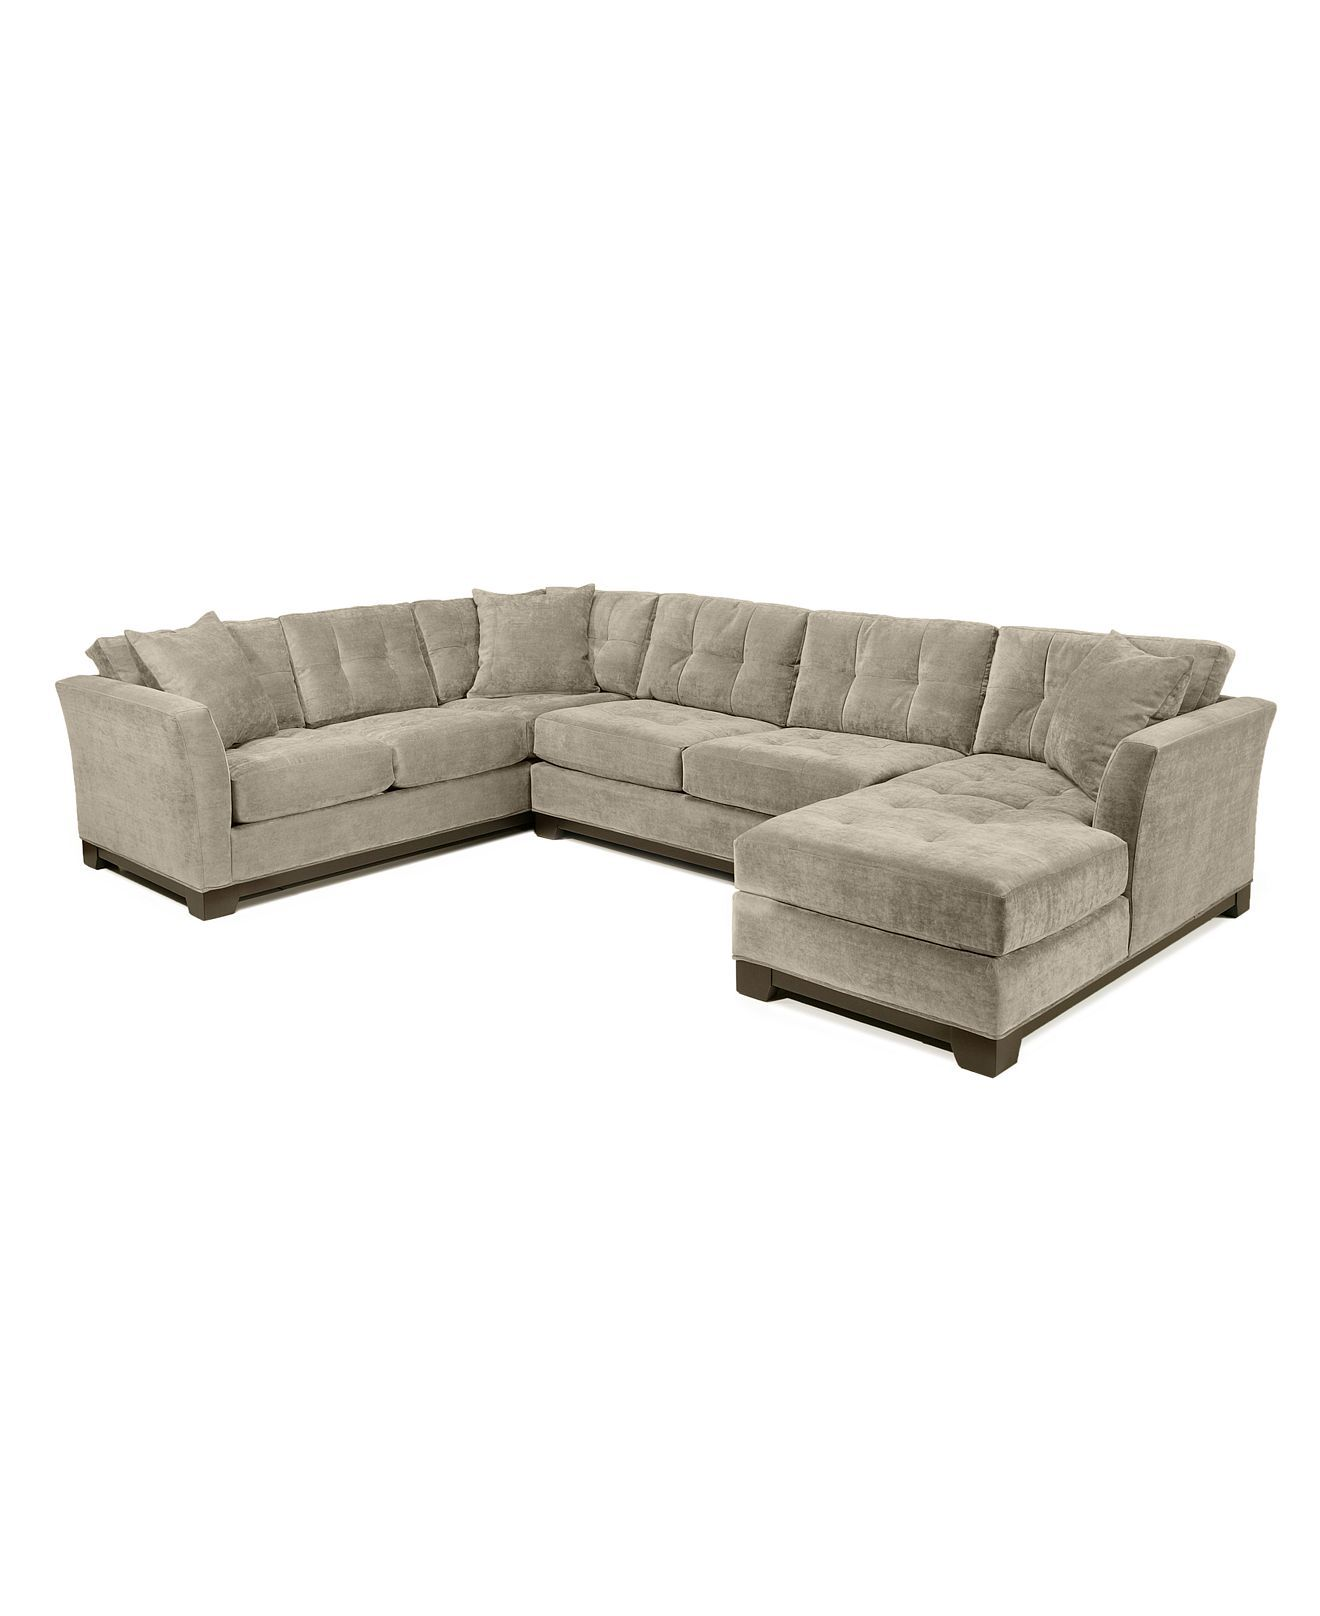 Elliot Fabric Microfiber 3-Piece Chaise Sectional Sofa, Created for ...